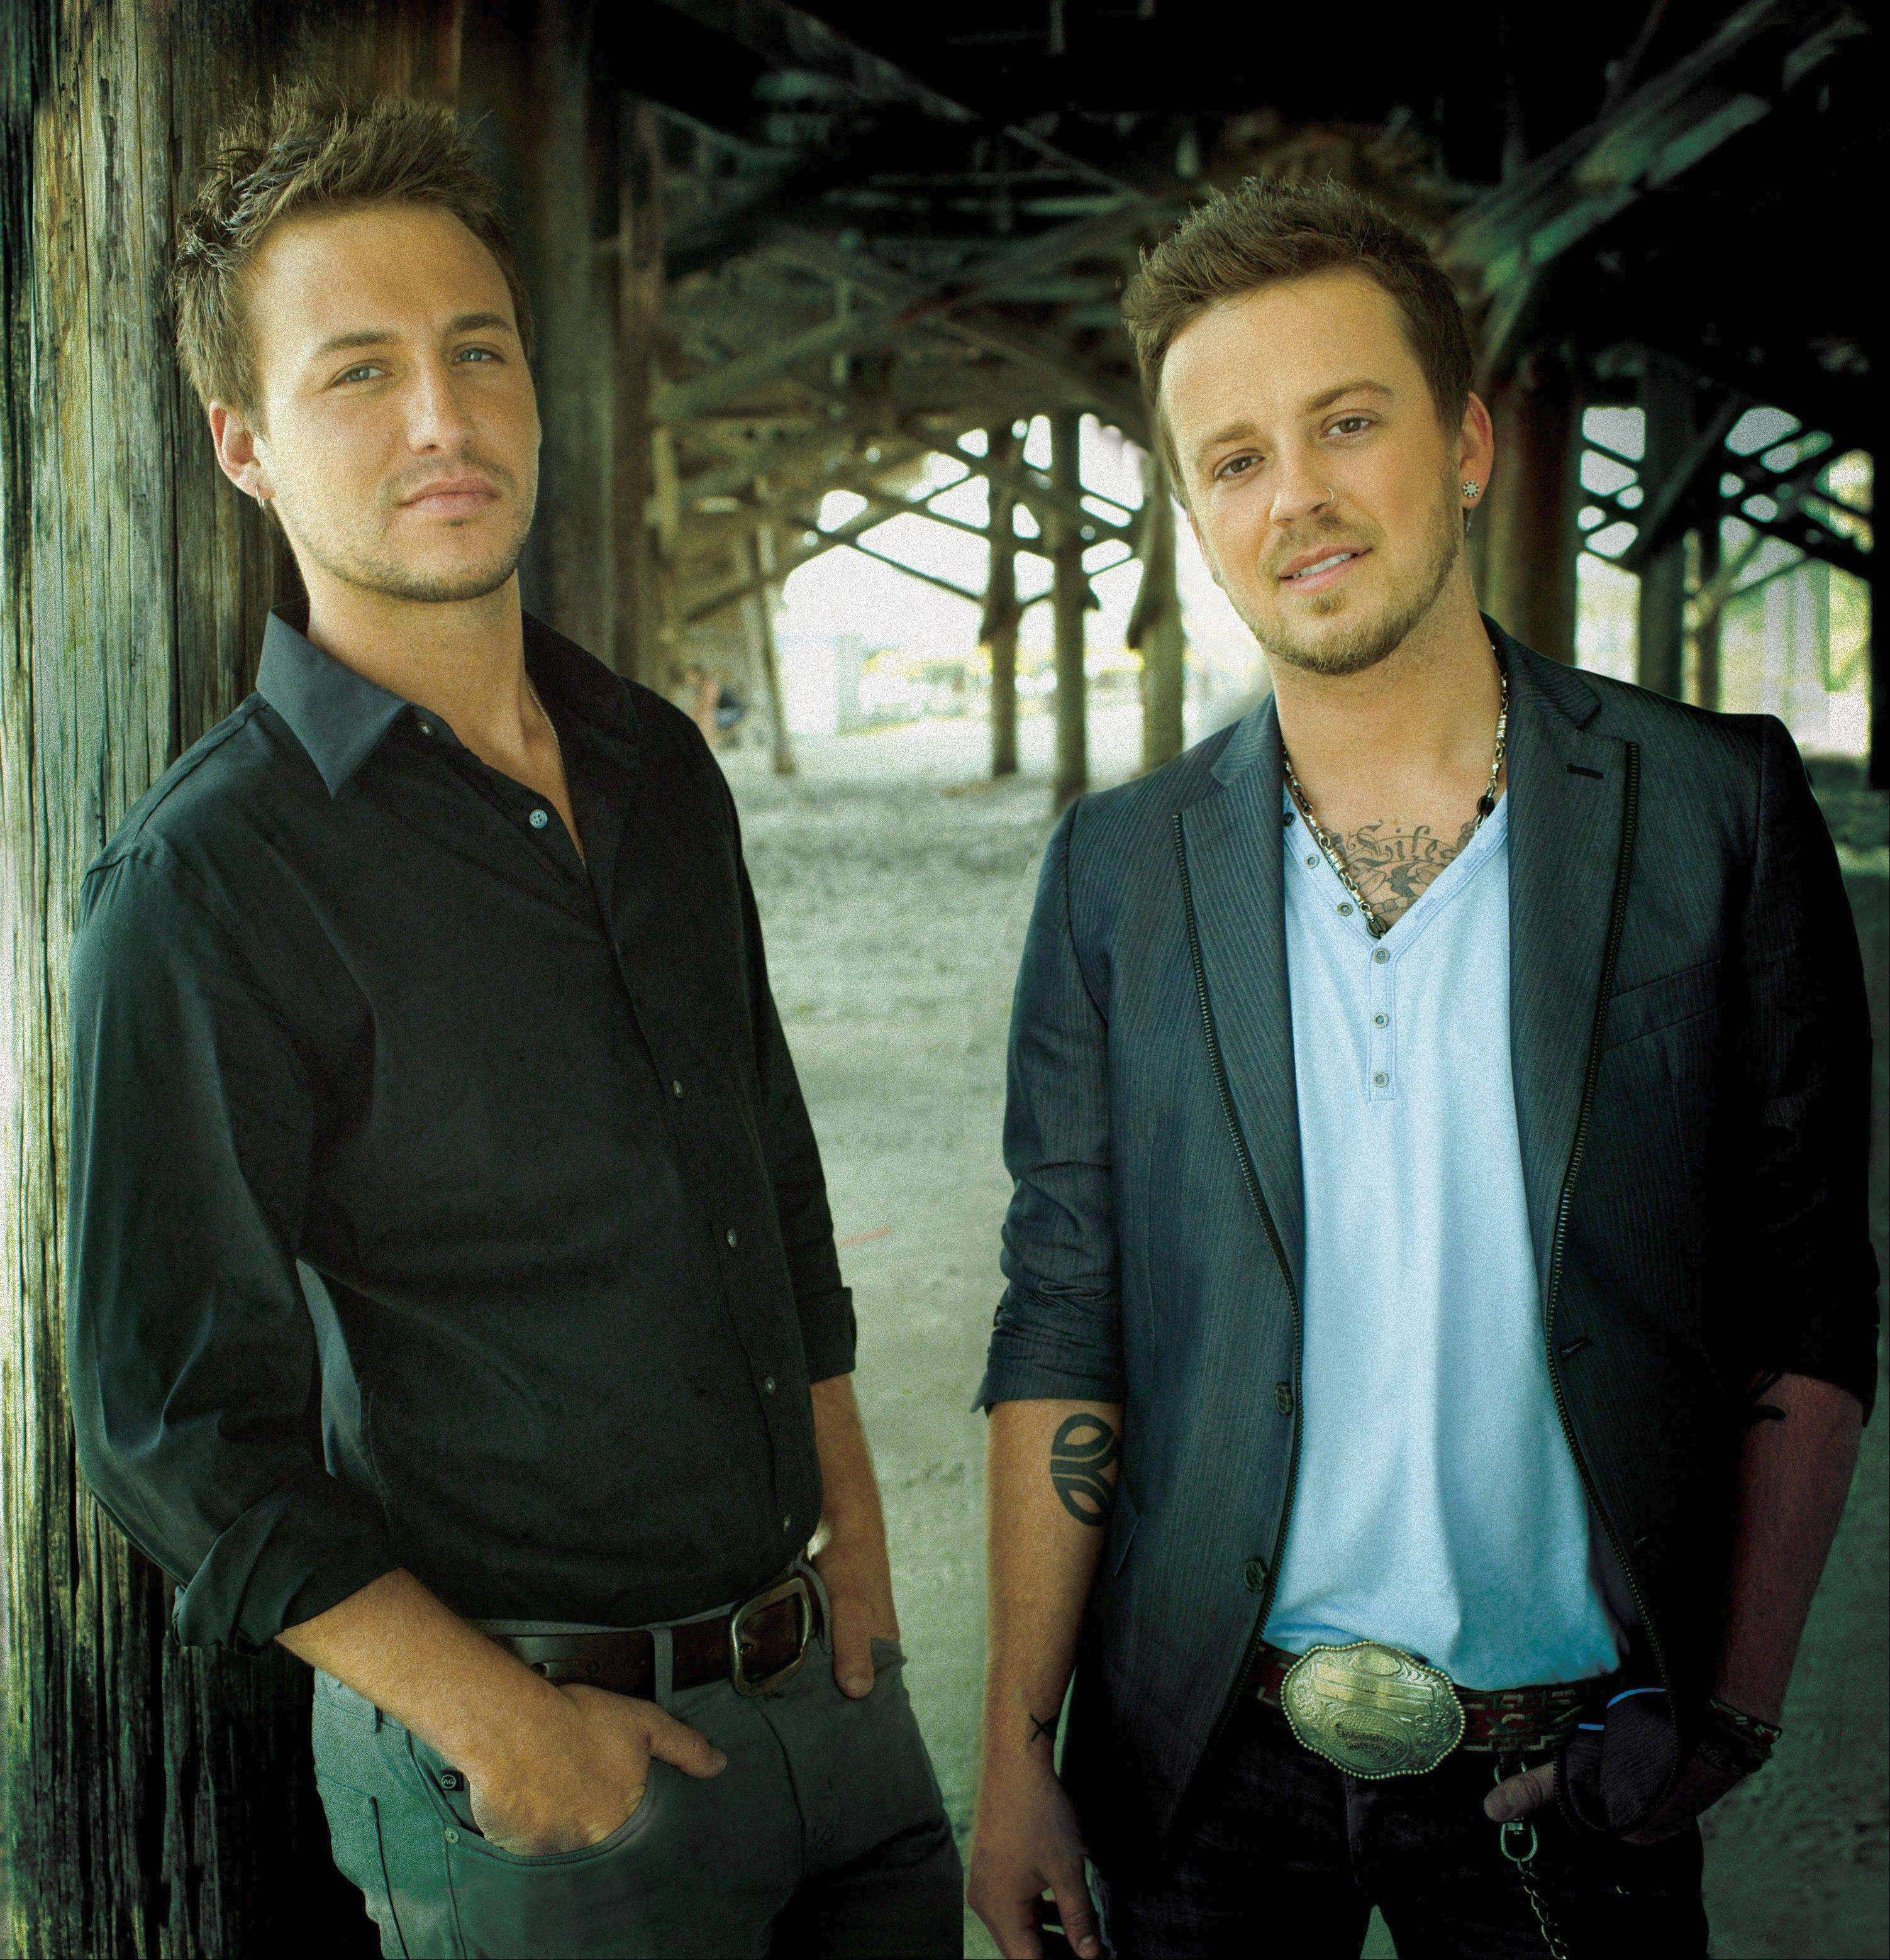 Country music duo Love and Theft -- also known as Stephen Baker Liles and Eric Gunderson -- will perform July 4 at Naperville's Ribfest celebration.